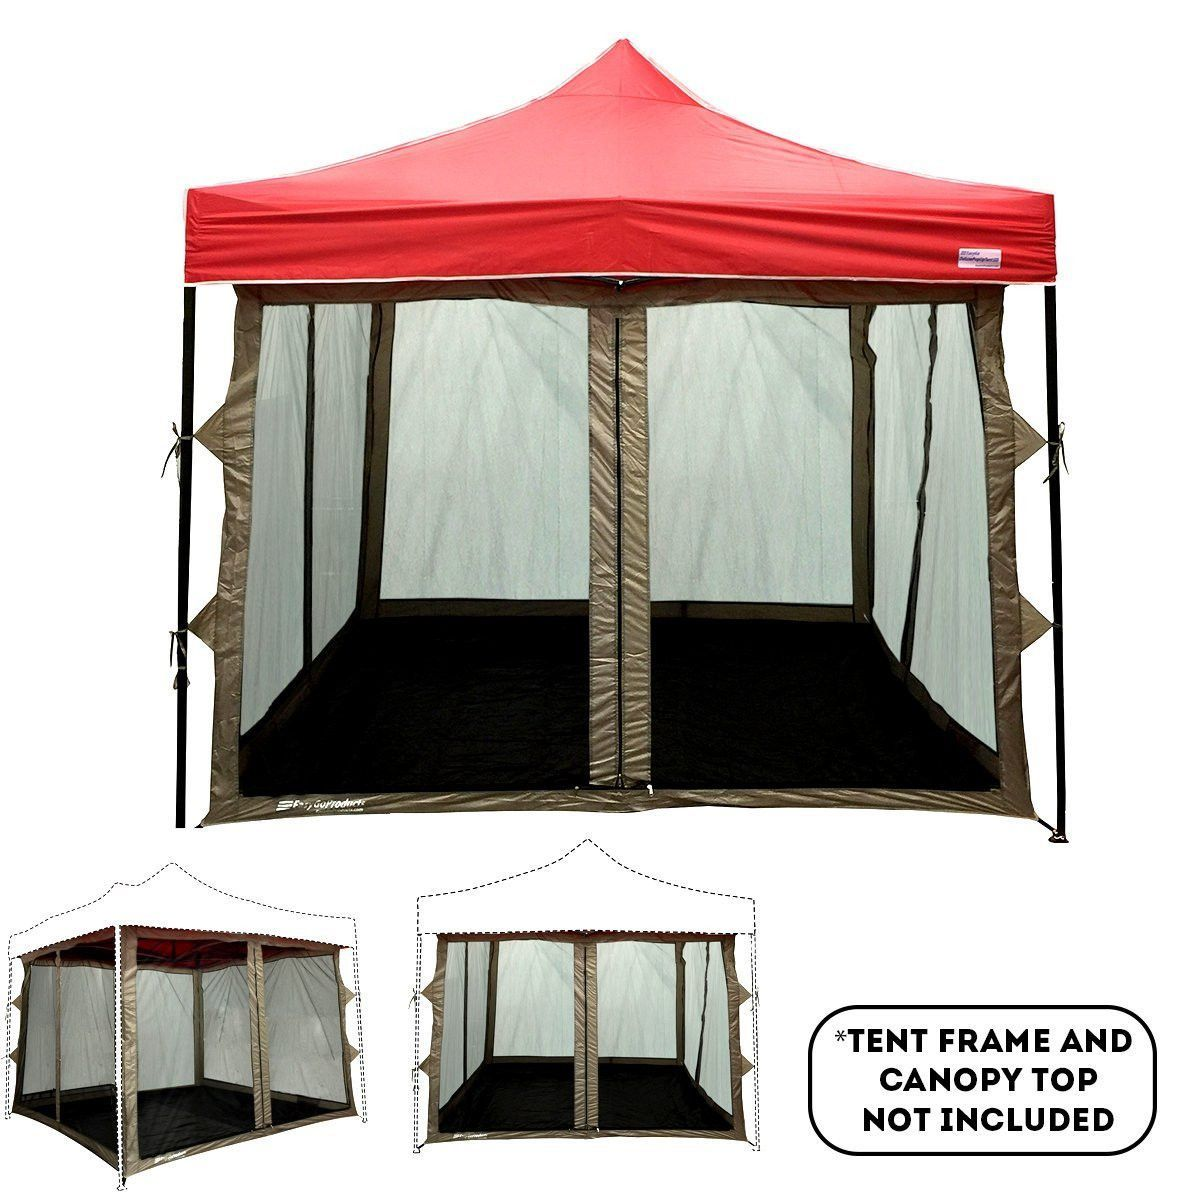 Inner Pop Up Tent Zippered Entry Full Mesh Walls Pvc Floor Ceiling Screen Tent Pvc Flooring Tent Room